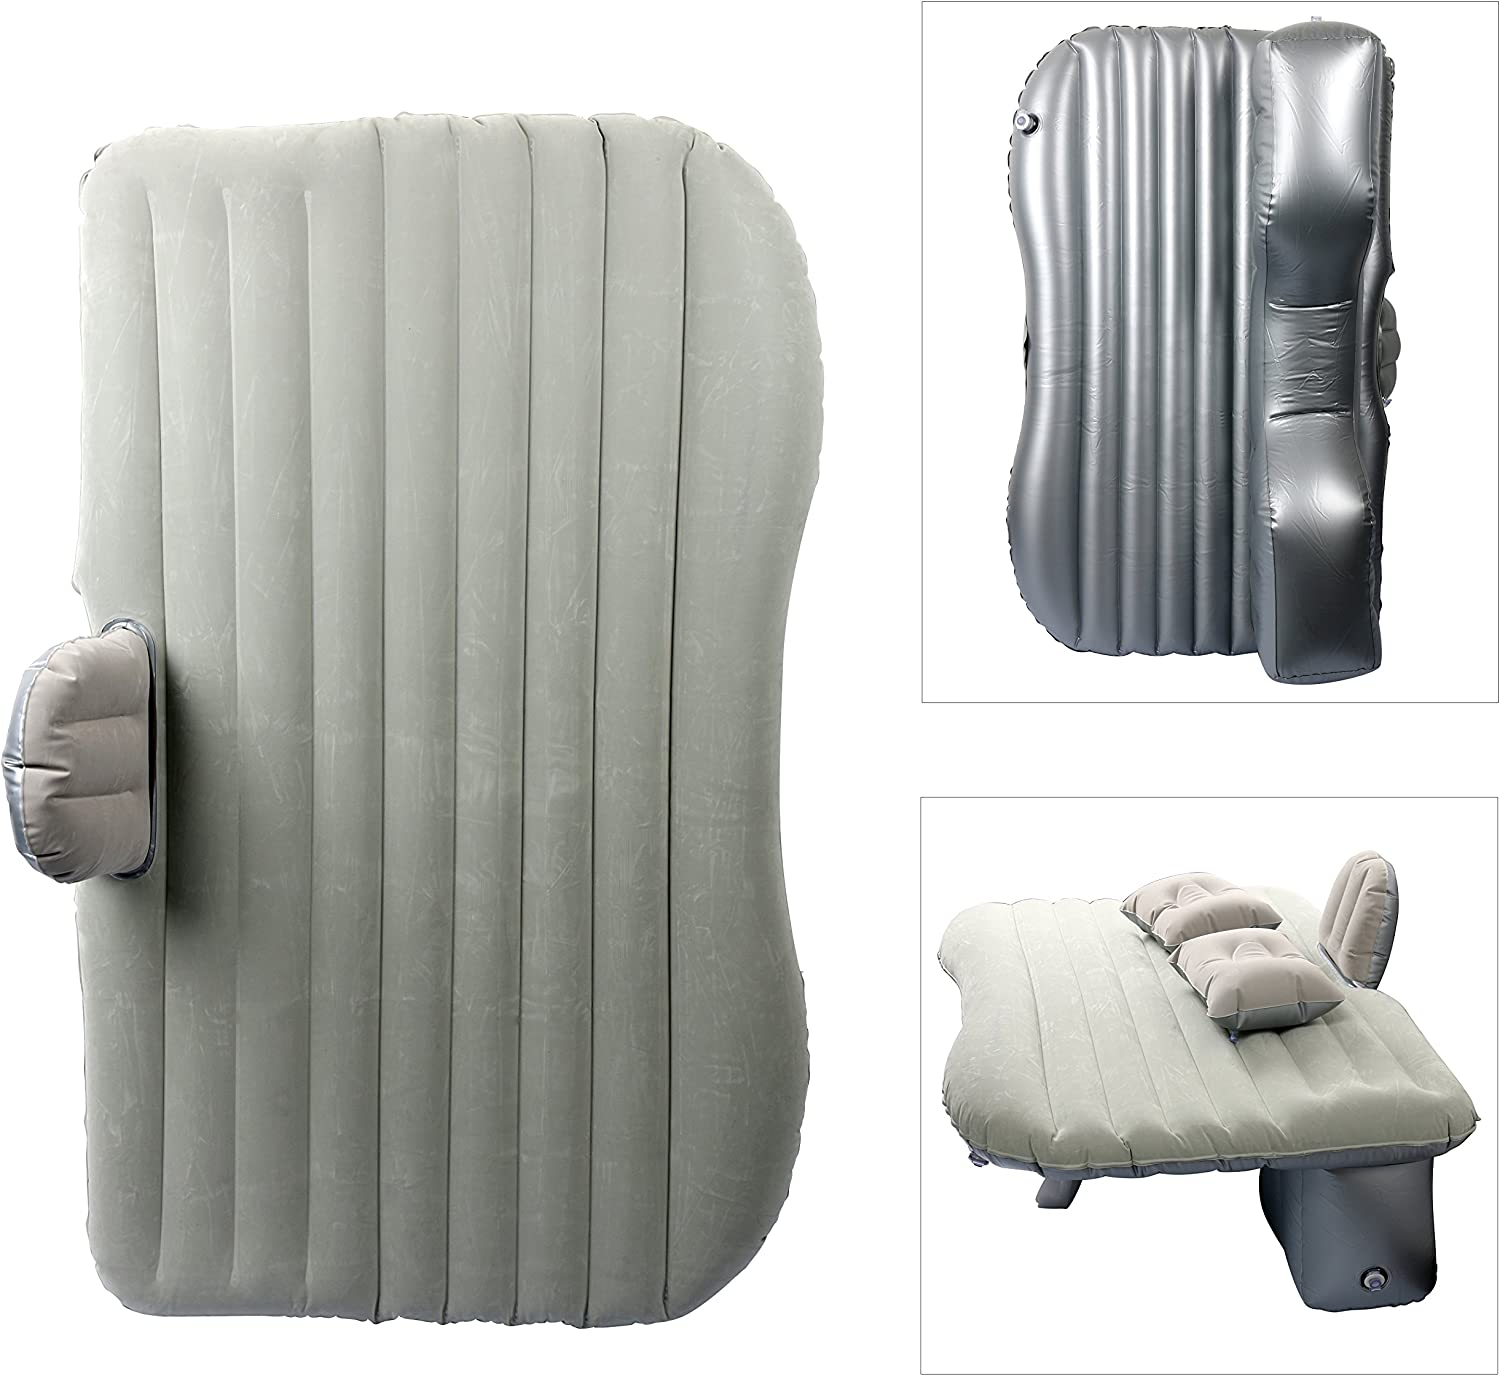 Silver YaeTact Car Travel Inflatable Mattress Inflatable Bed Camping Universal with Two Air Pillows Blue Silver Color in: Black